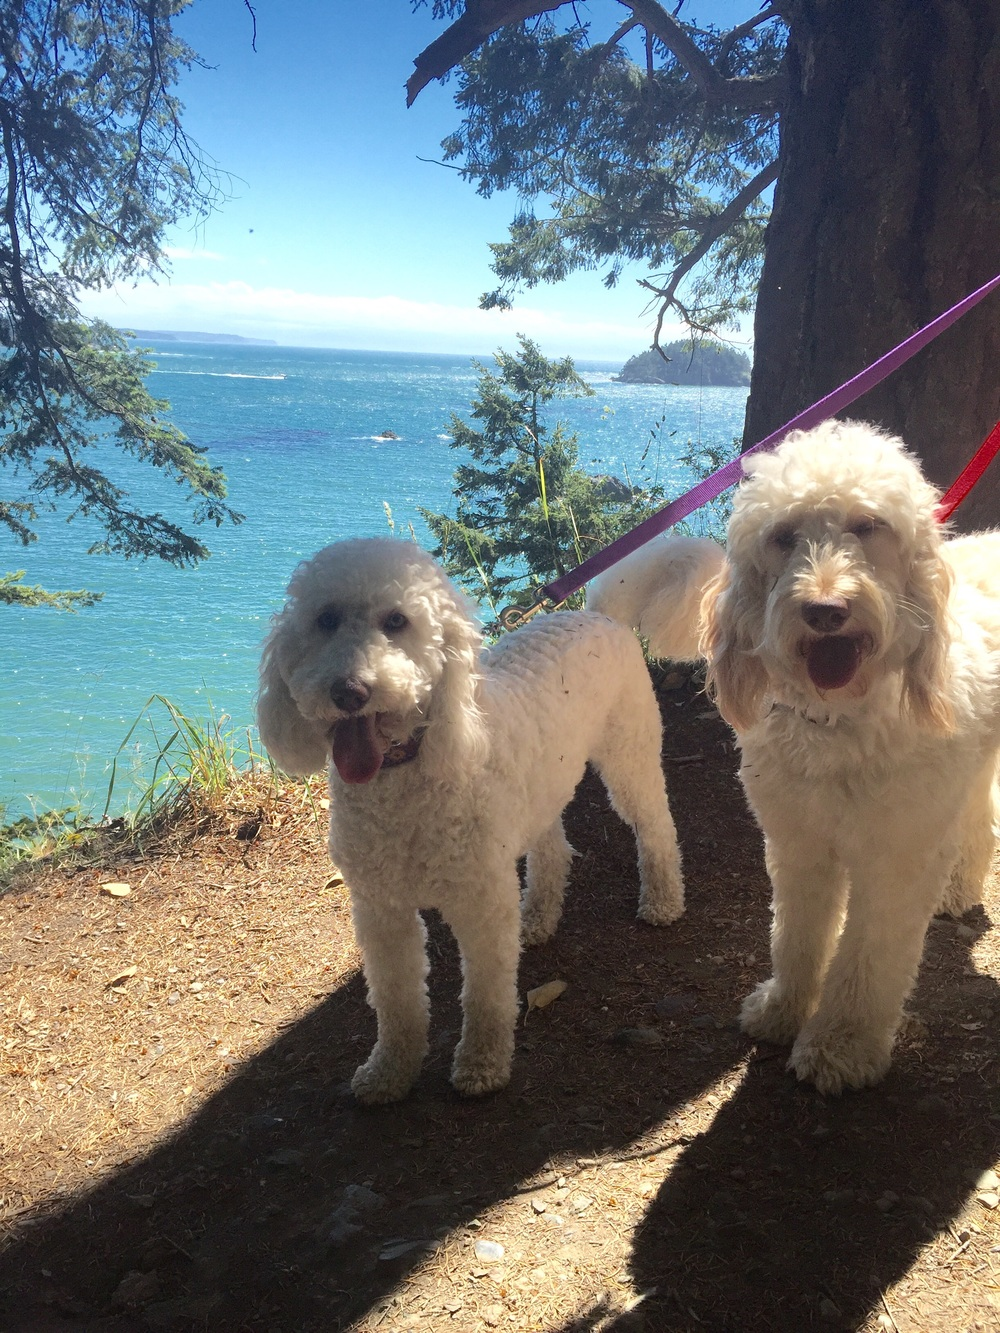 Tilly and Penny with Deception Pass behind them. Photo by Audrey.